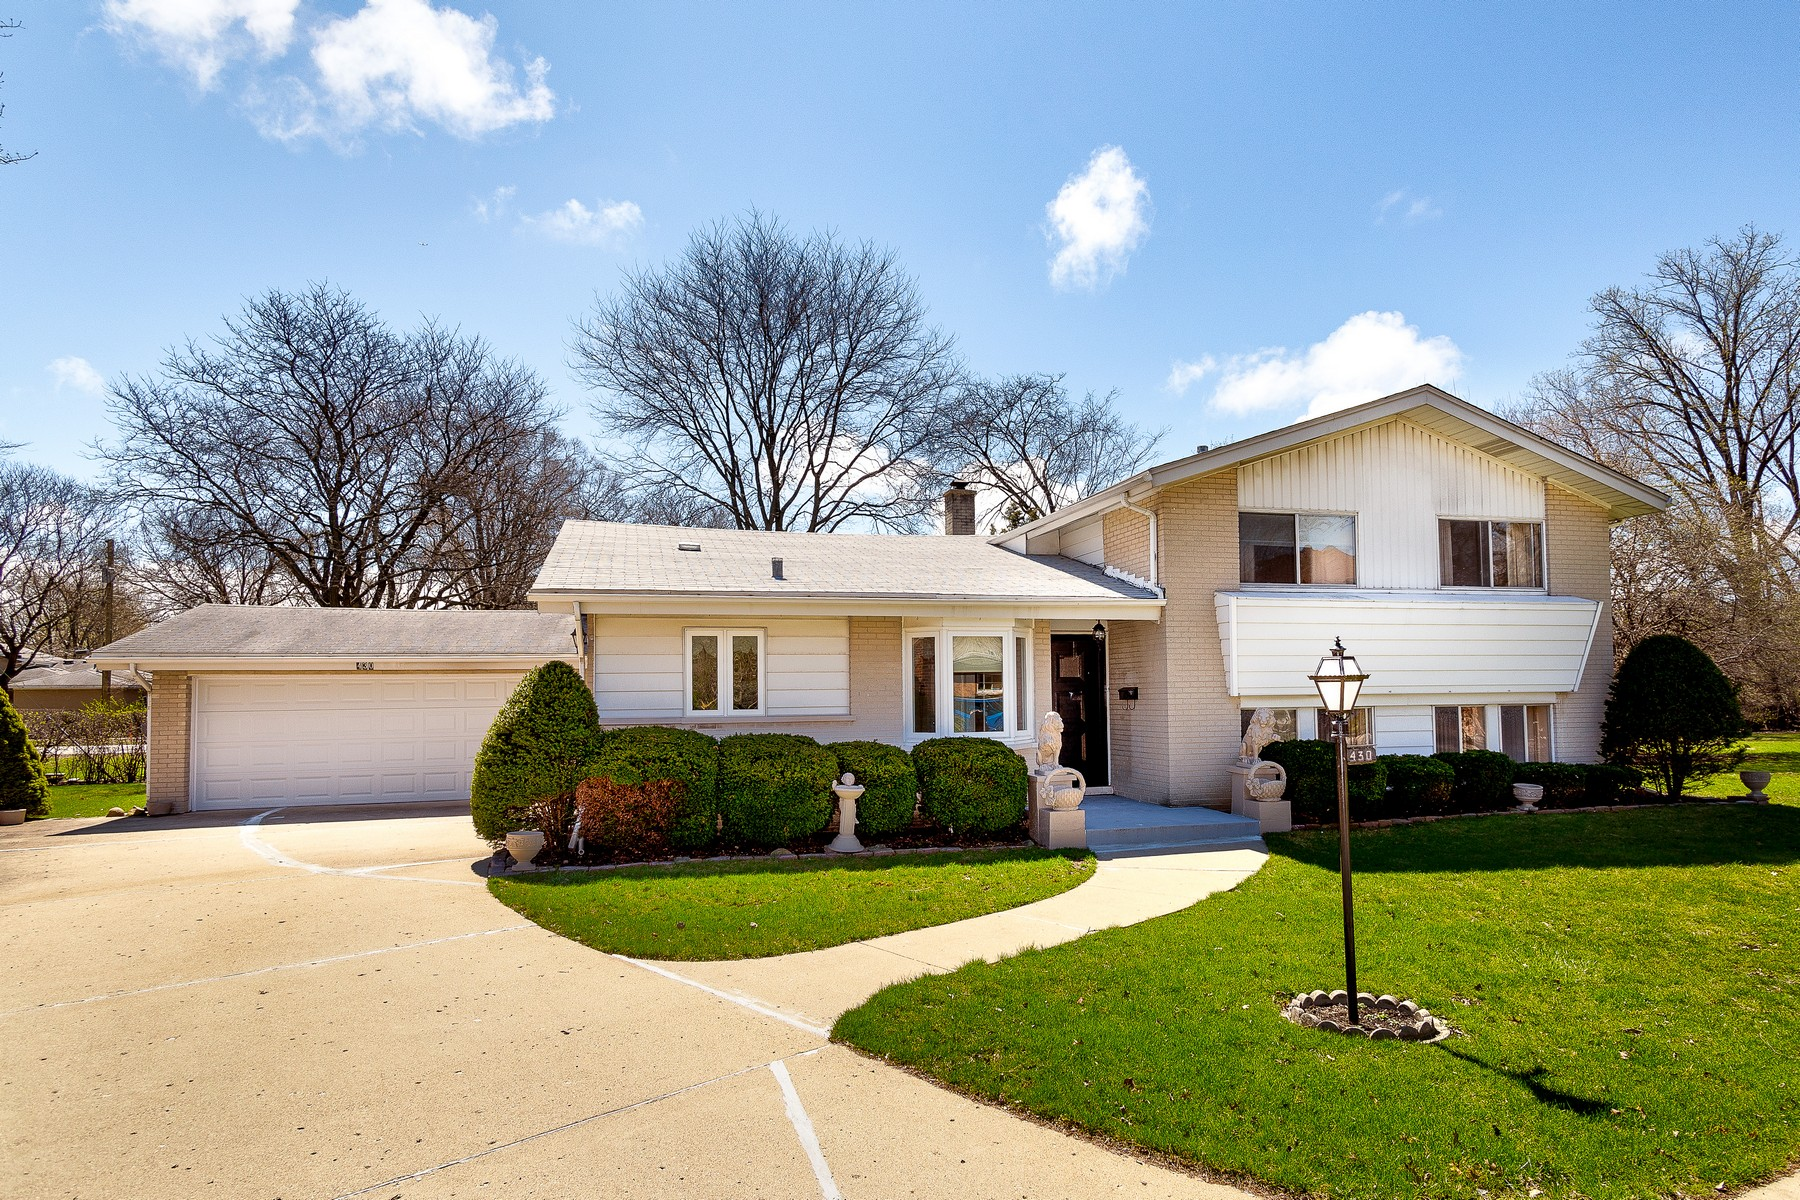 Single Family Homes for Active at Bright And Sunny Split Level 430 Cove Lane Wilmette, Illinois 60091 United States